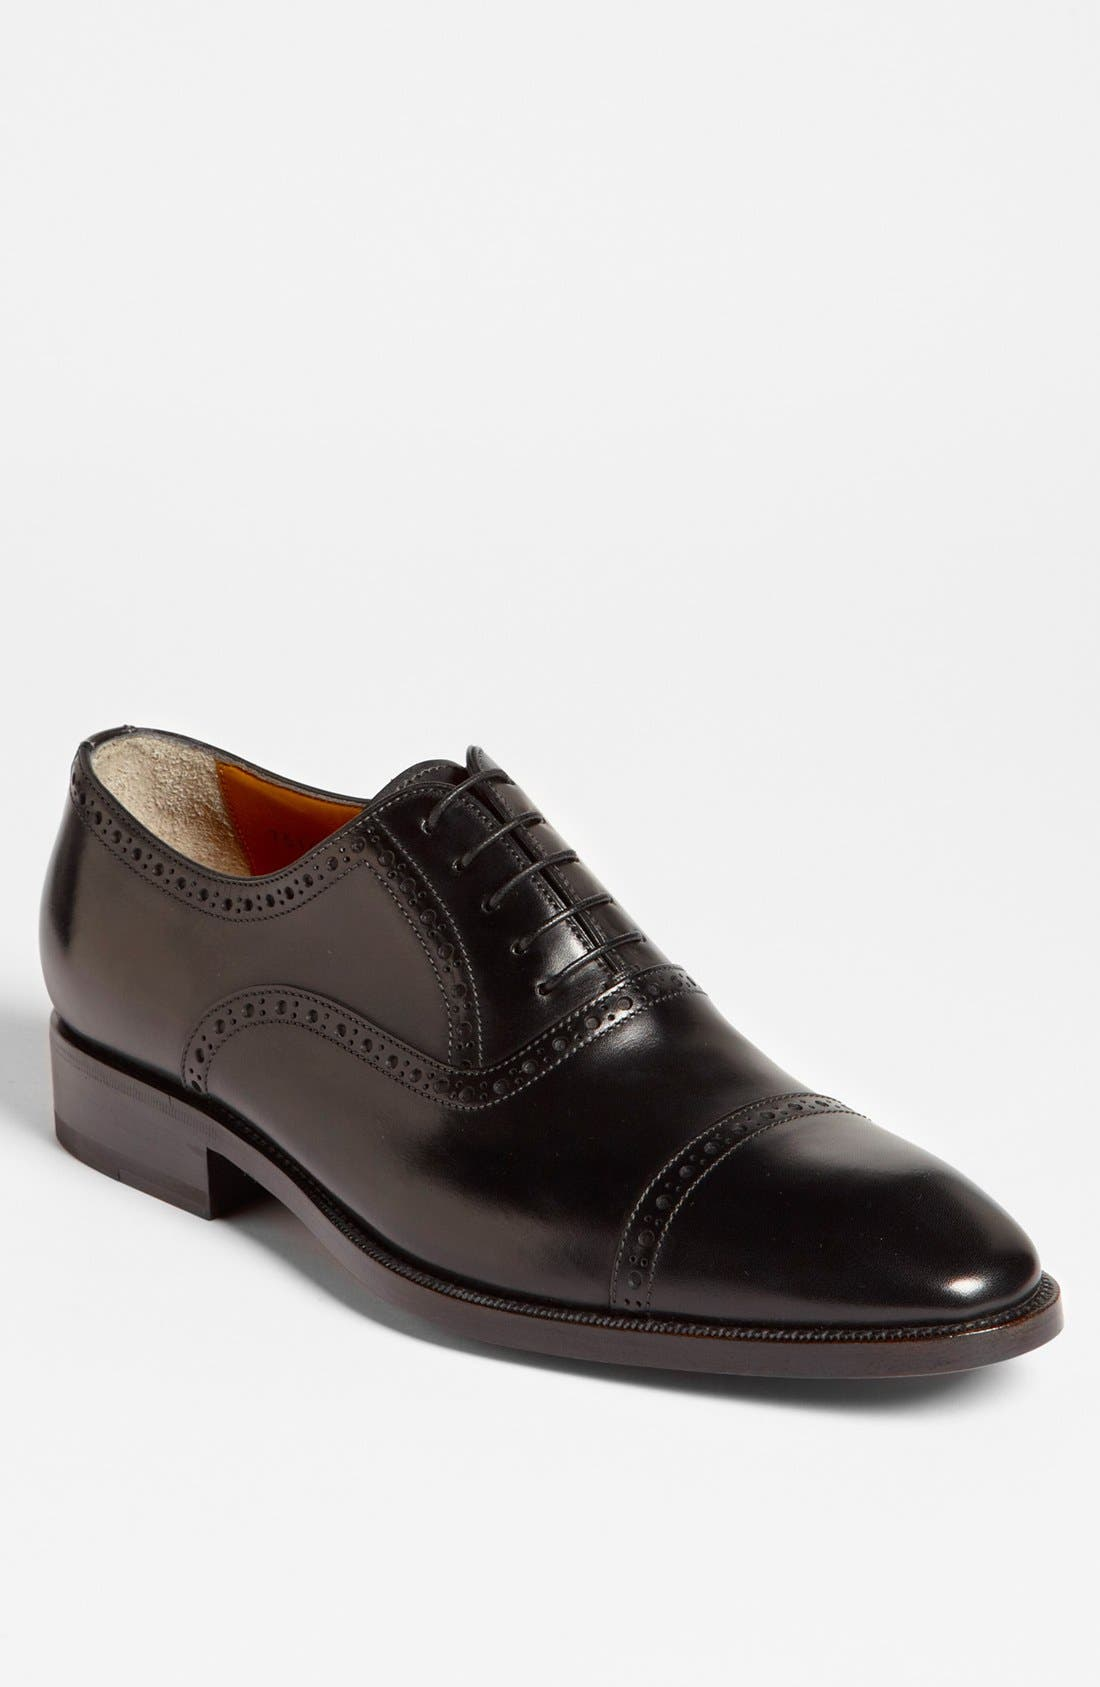 Alternate Image 1 Selected - Santoni 'Bristol' Oxford